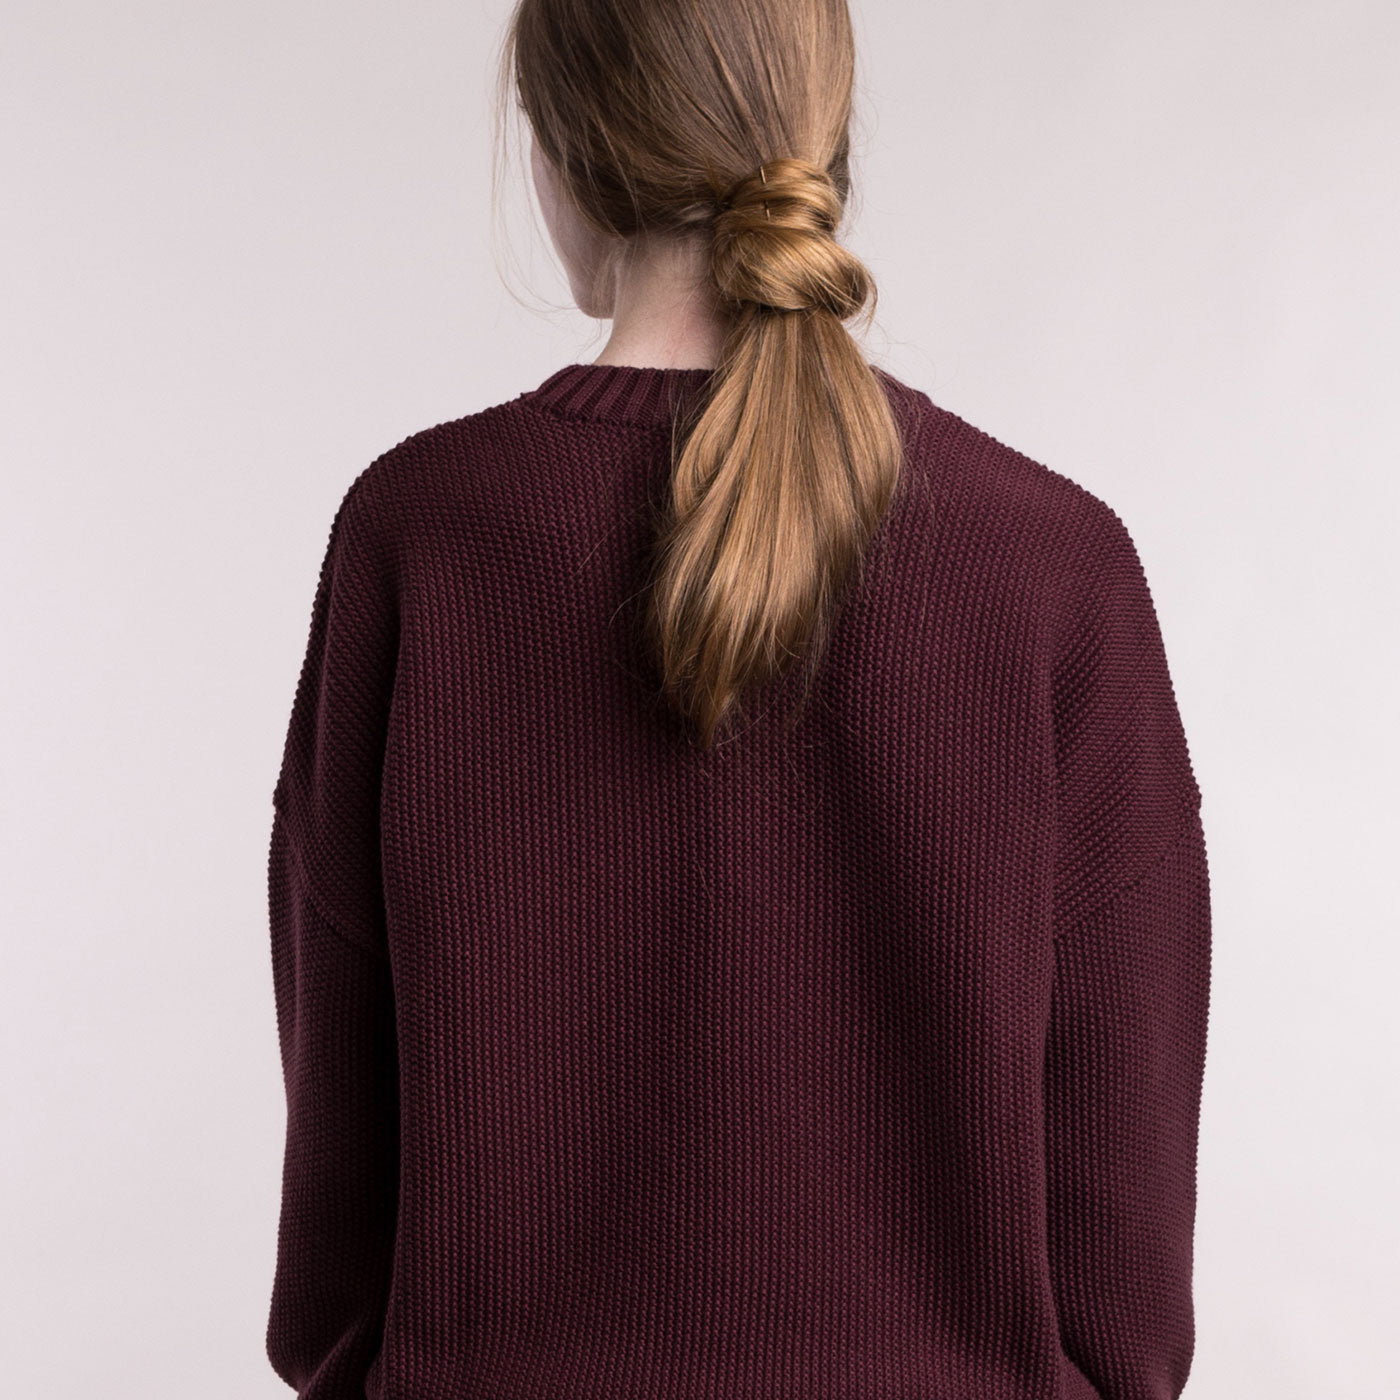 The model wears a burgundy sustainable organic cotton knitted fine rice pullover, back view.